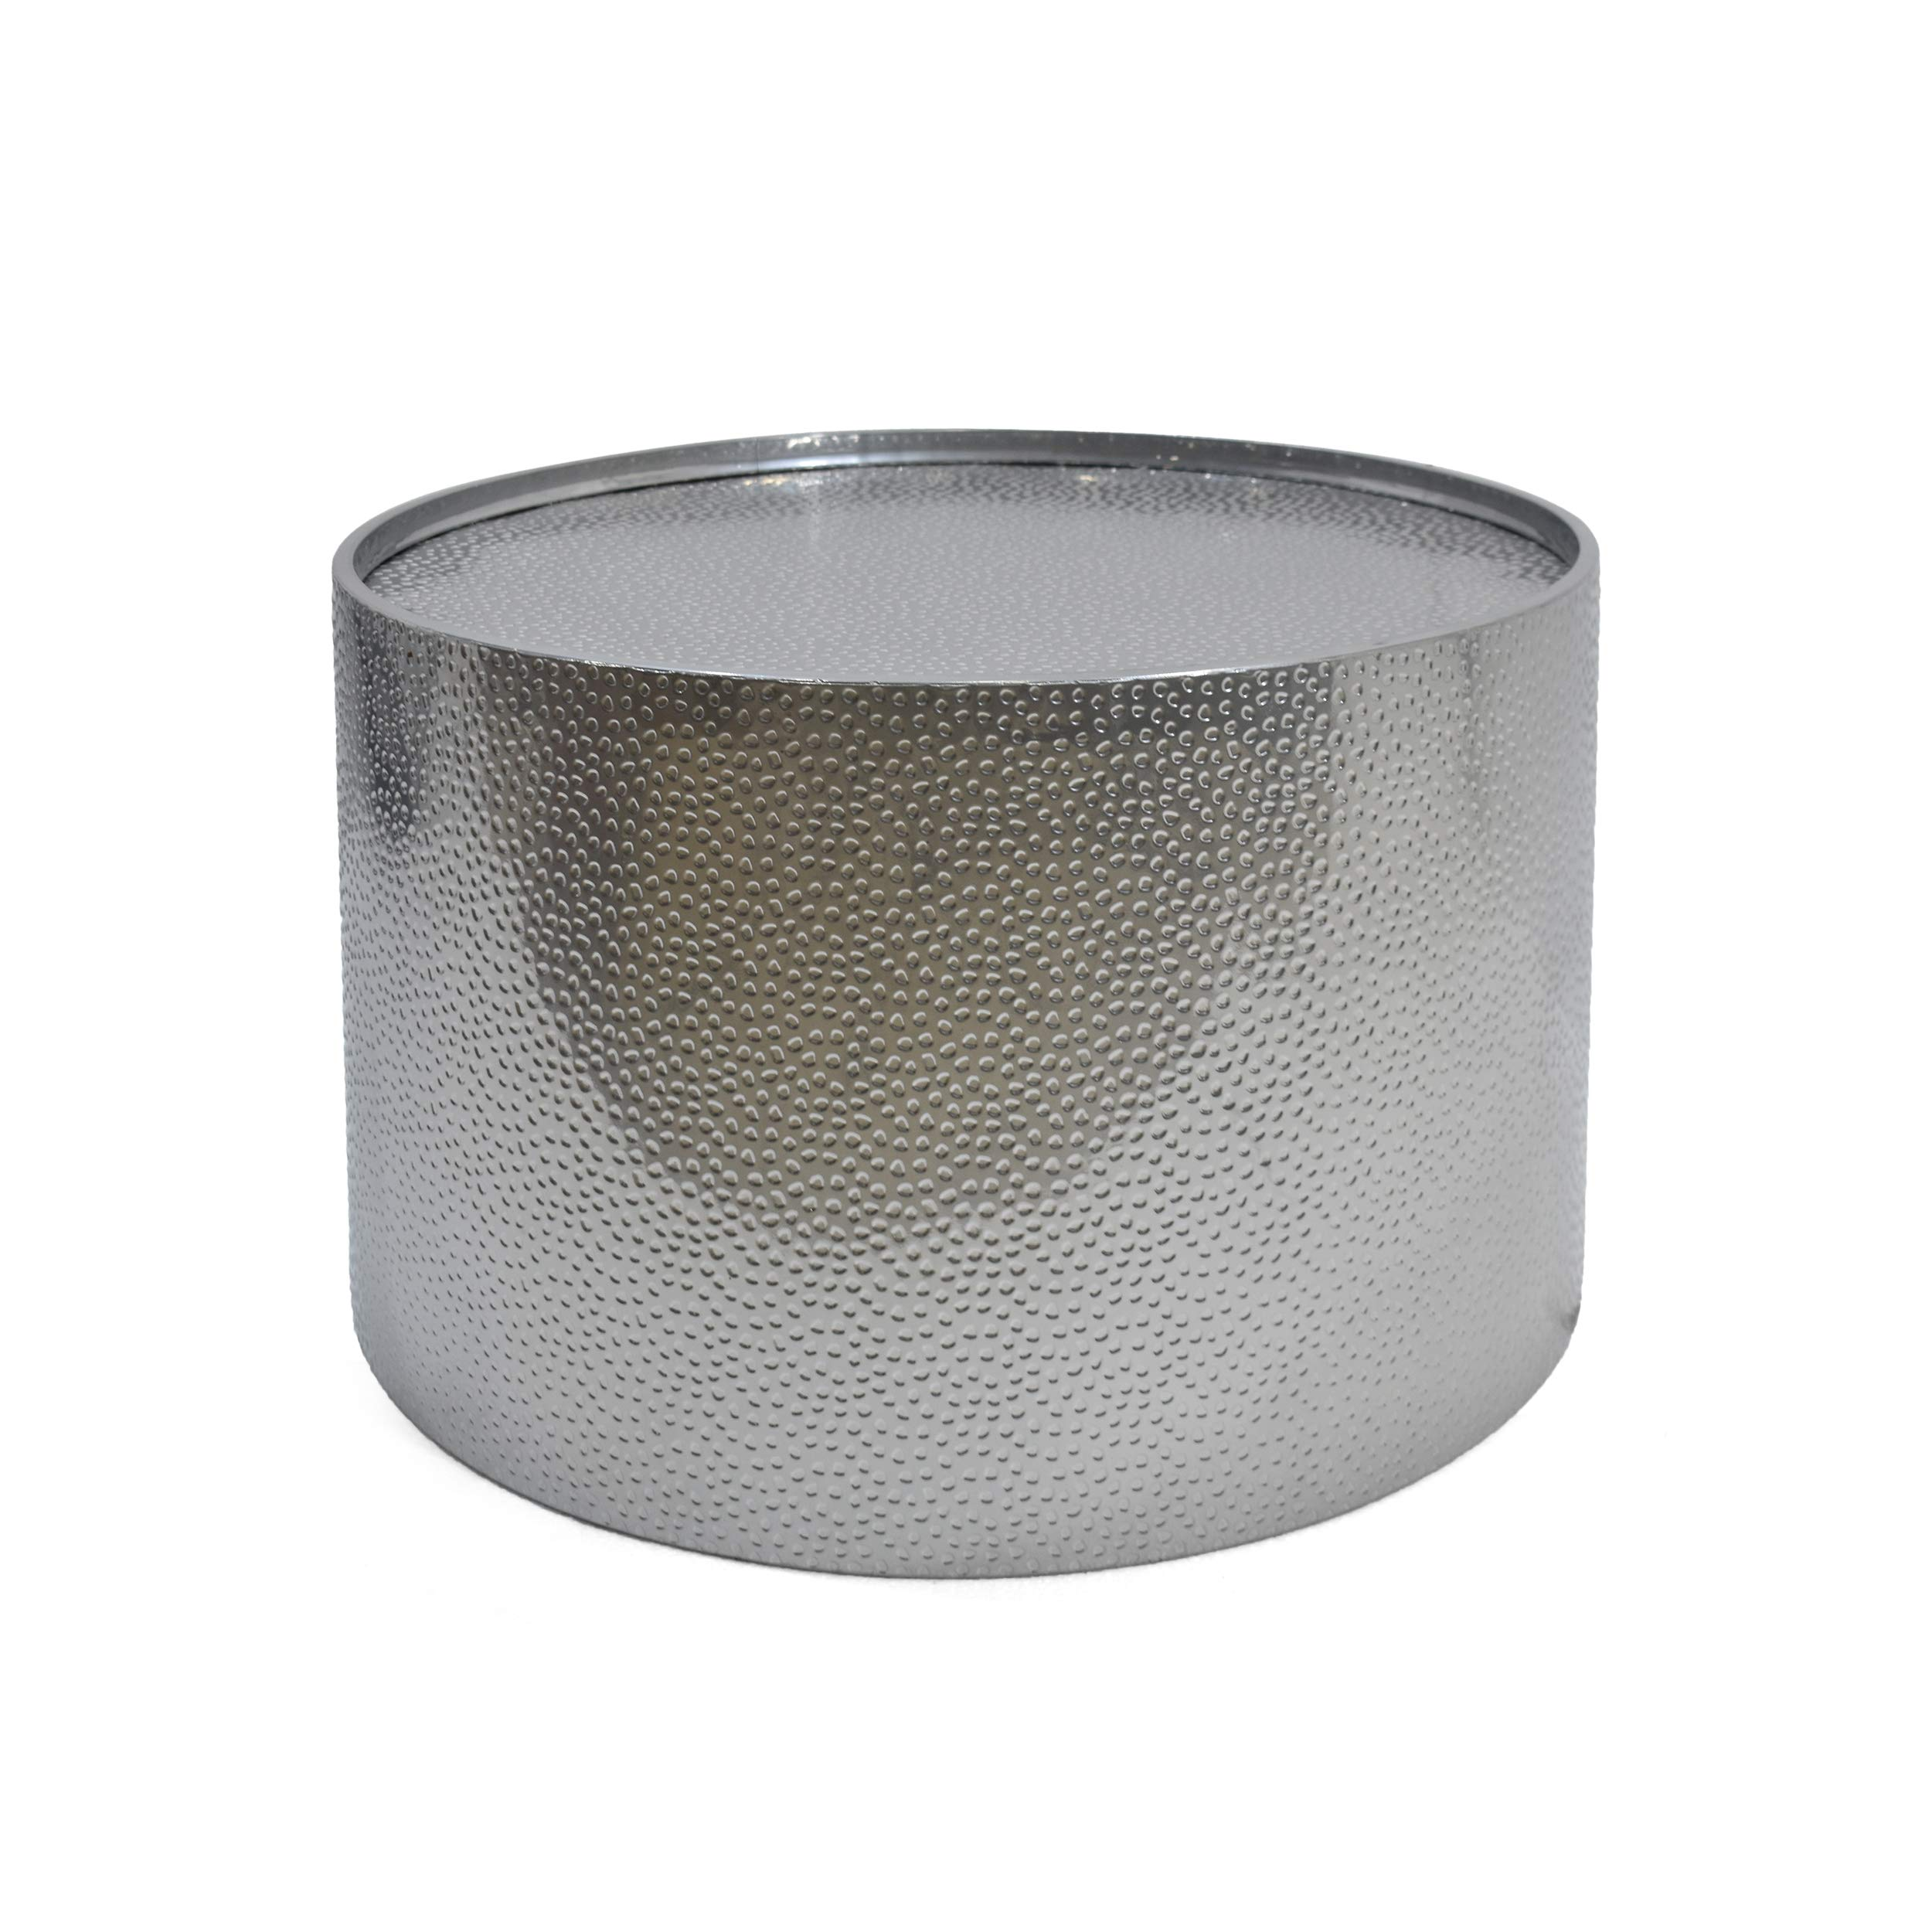 Christopher Knight Home Rache Modern Round Coffee Table with Hammered Iron, Silver, 26. 00'' L x 26. 00'' W x 17. 00'' H by Christopher Knight Home